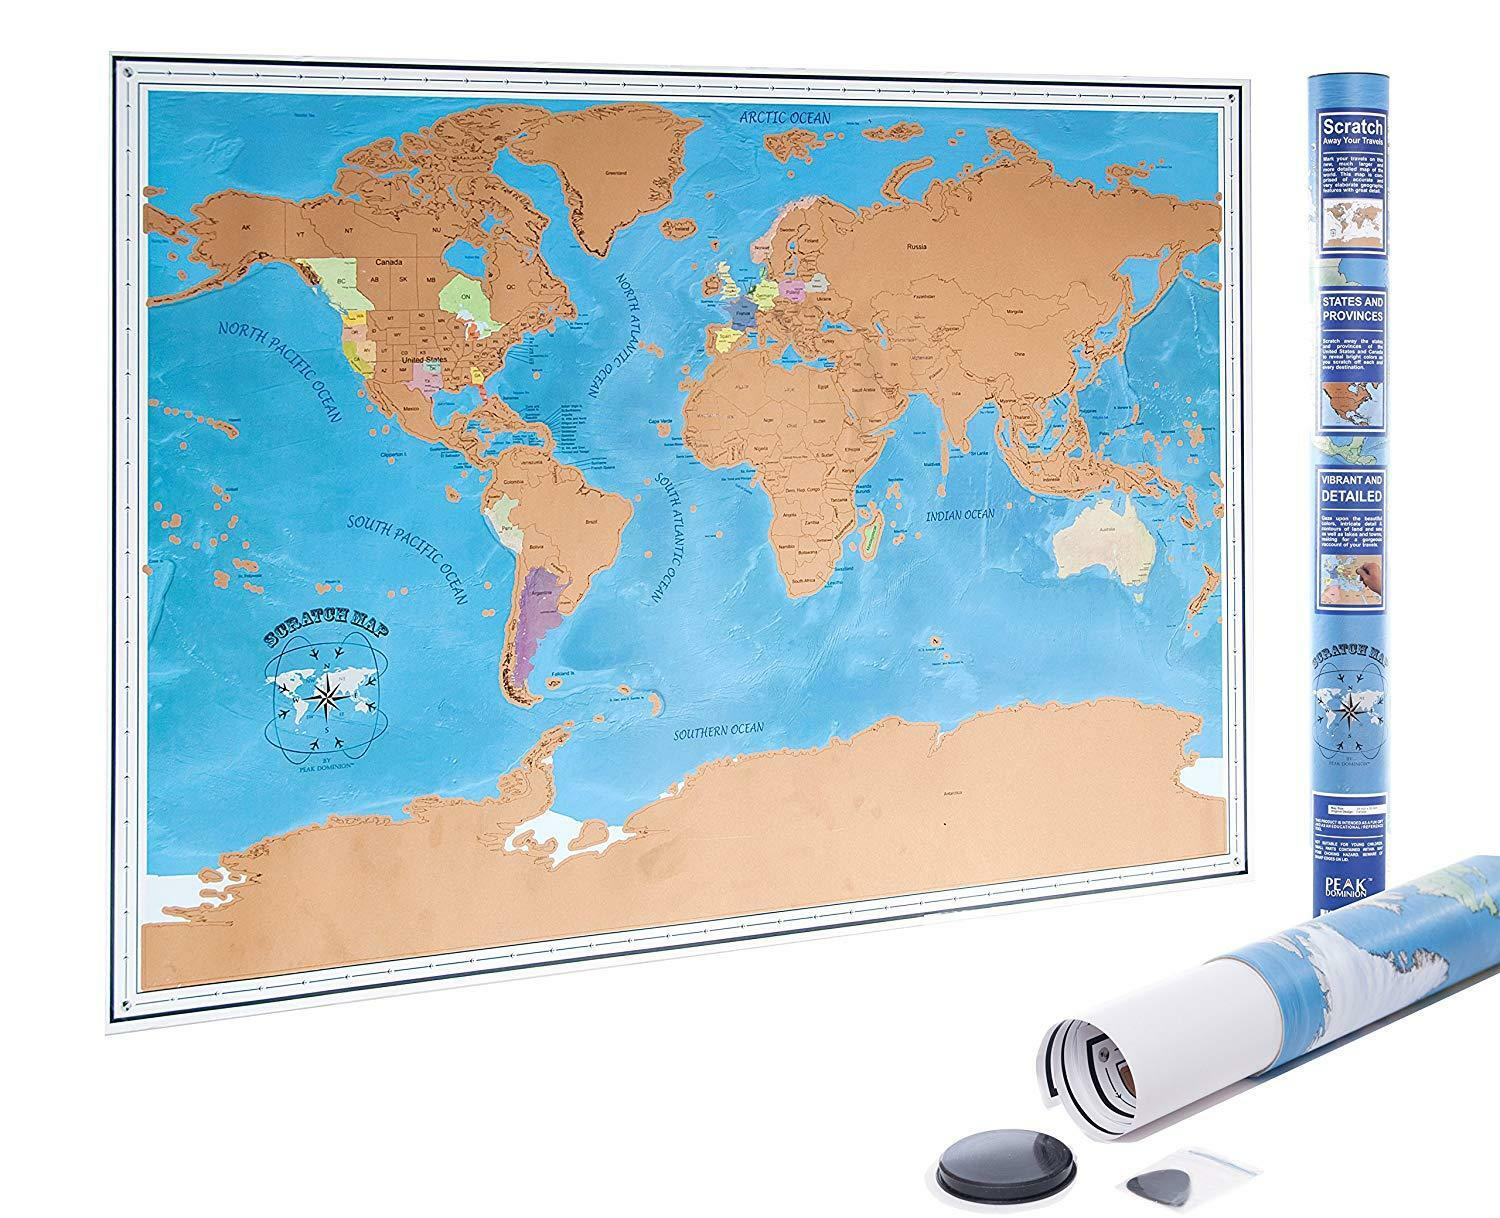 Scratch off world map poster with us states and country flags fast 1 of 9only 4 available gumiabroncs Choice Image